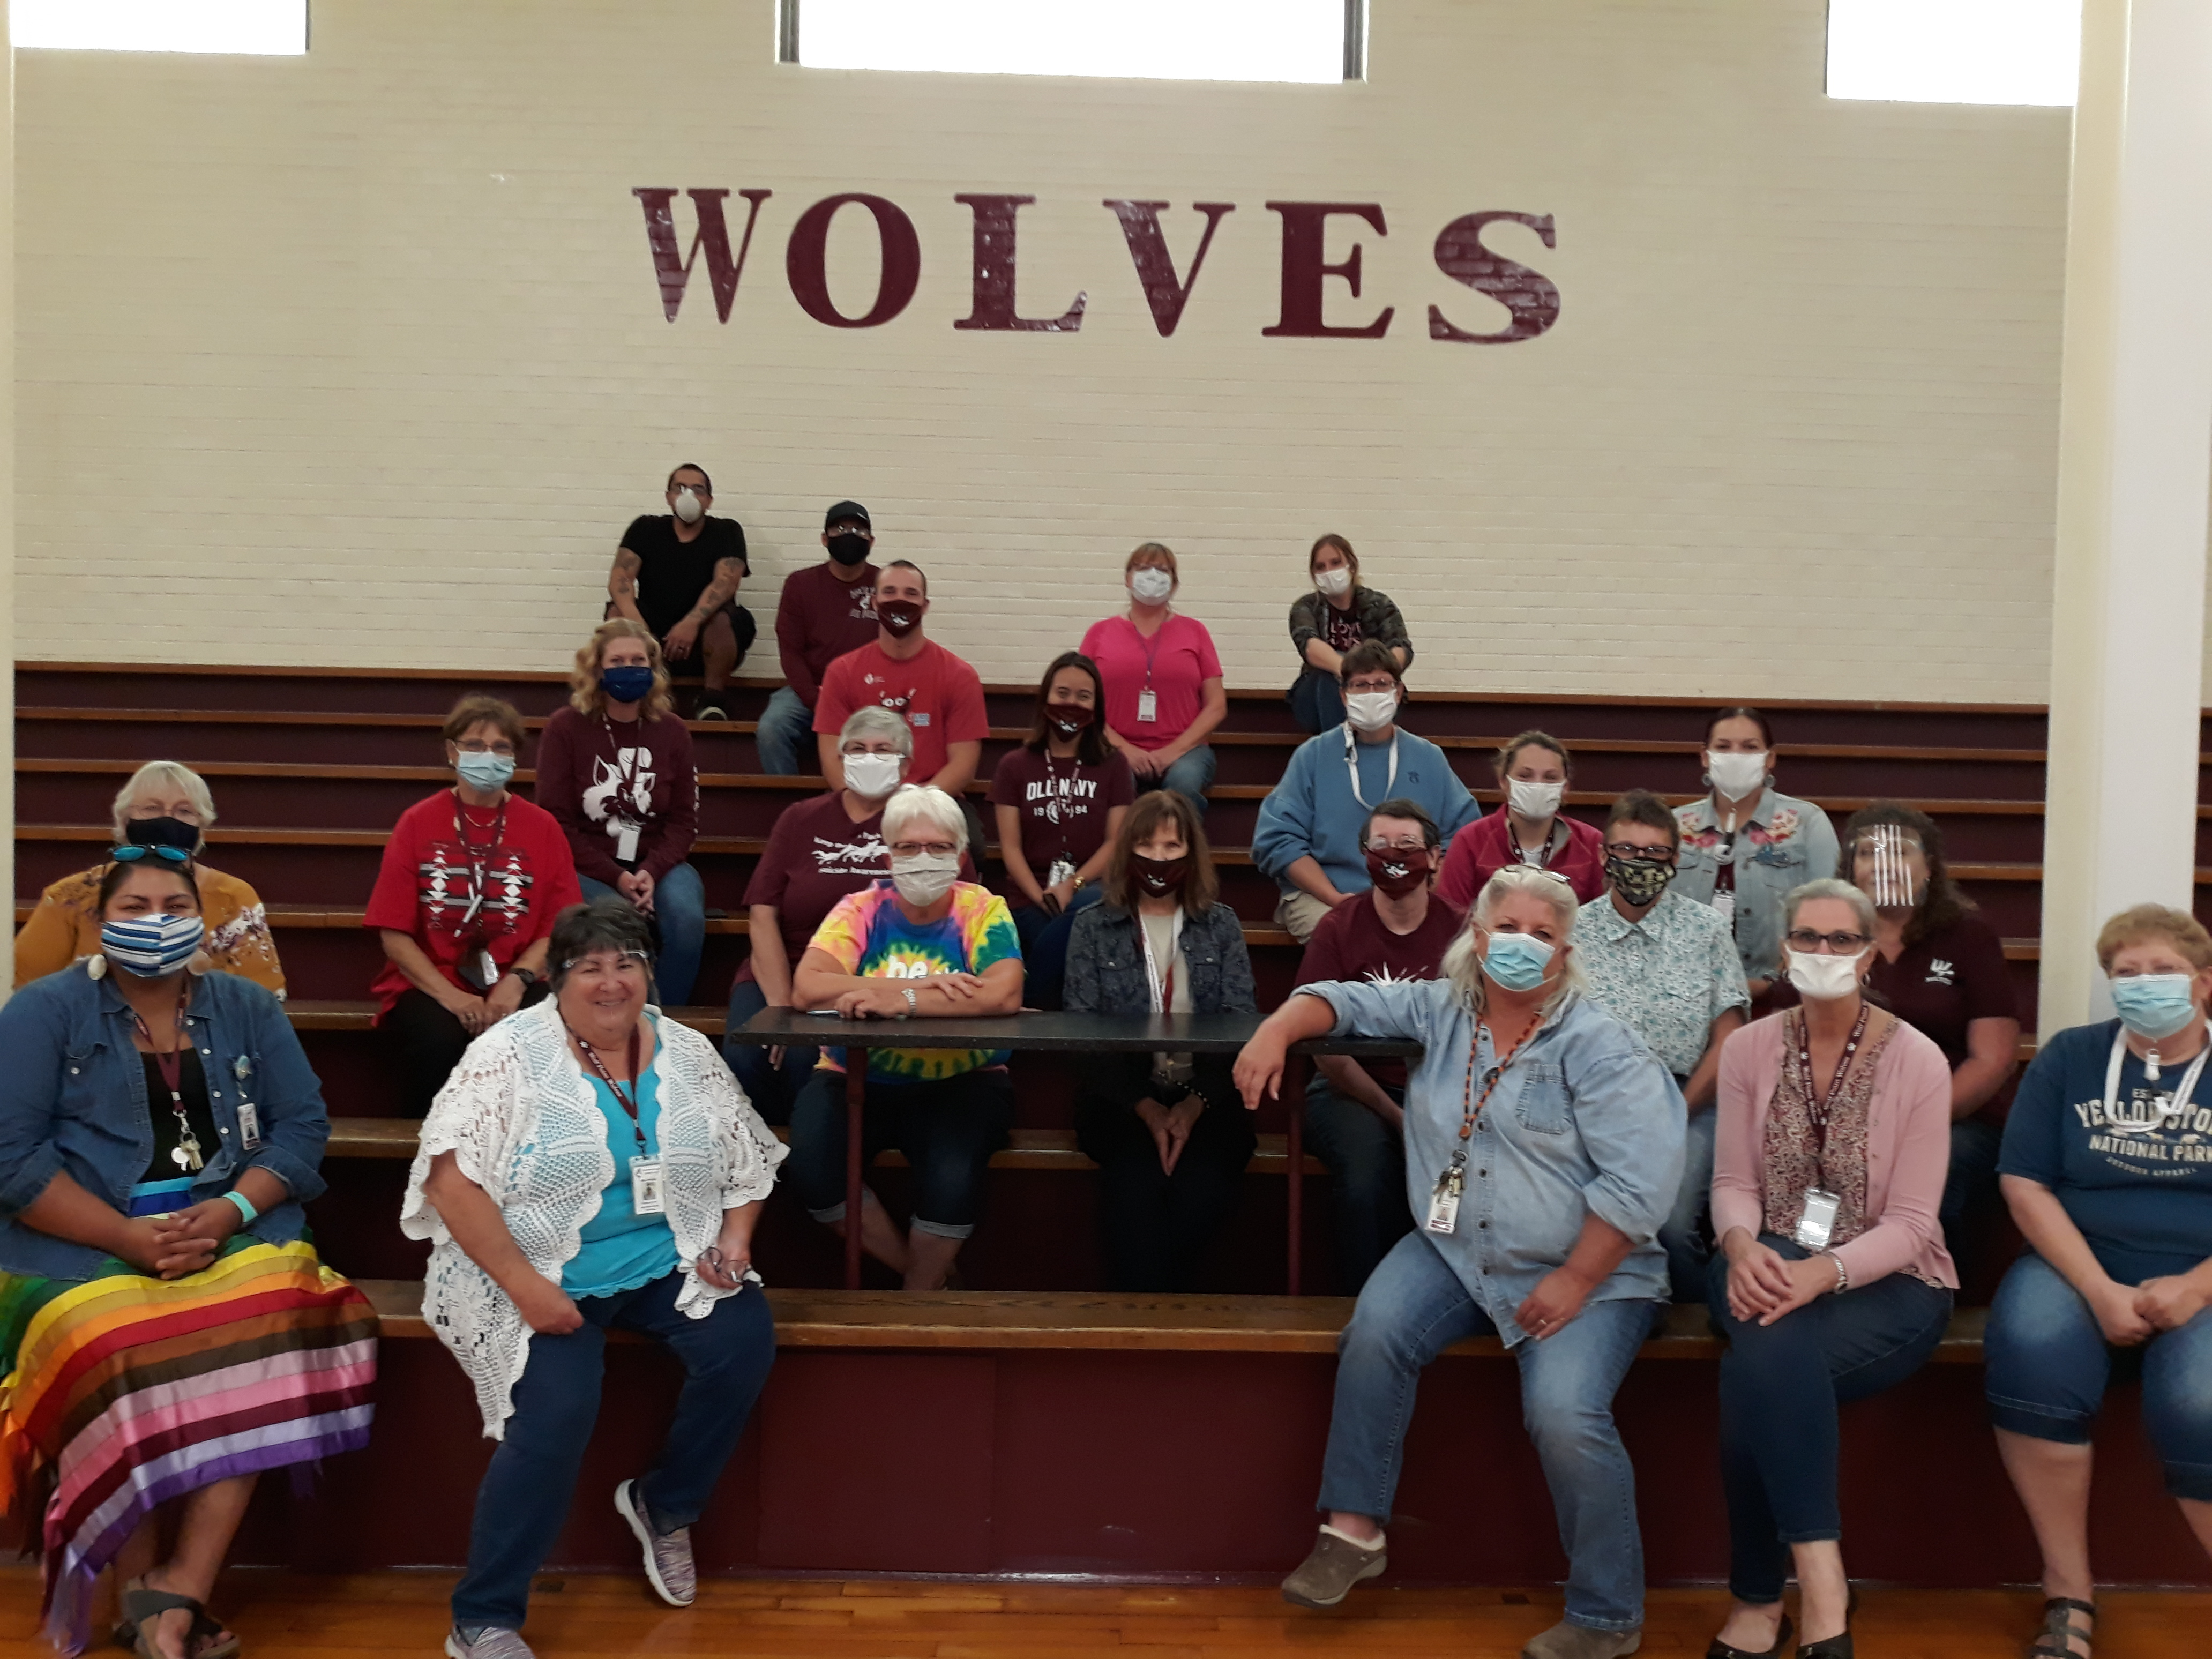 Staff of Southside Elementary wearing masks and sitting on bleachers